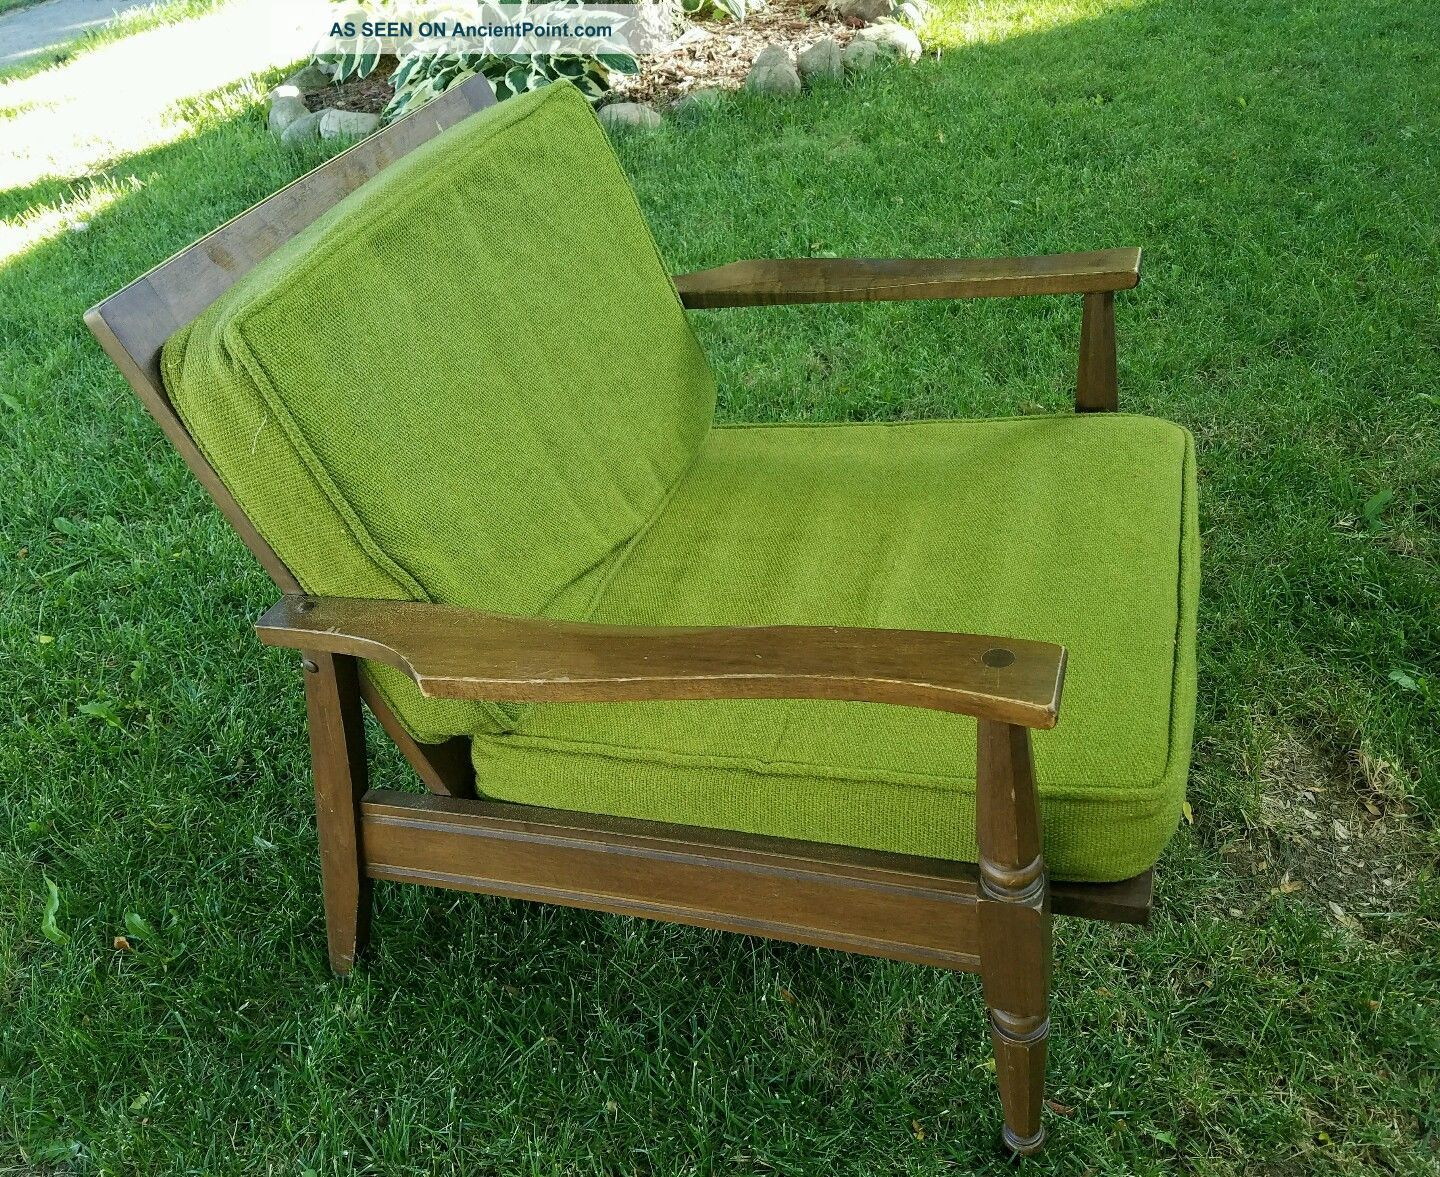 Vintage Heywood Wakefield Chair With Avocado Green Cushions Post-1950 photo